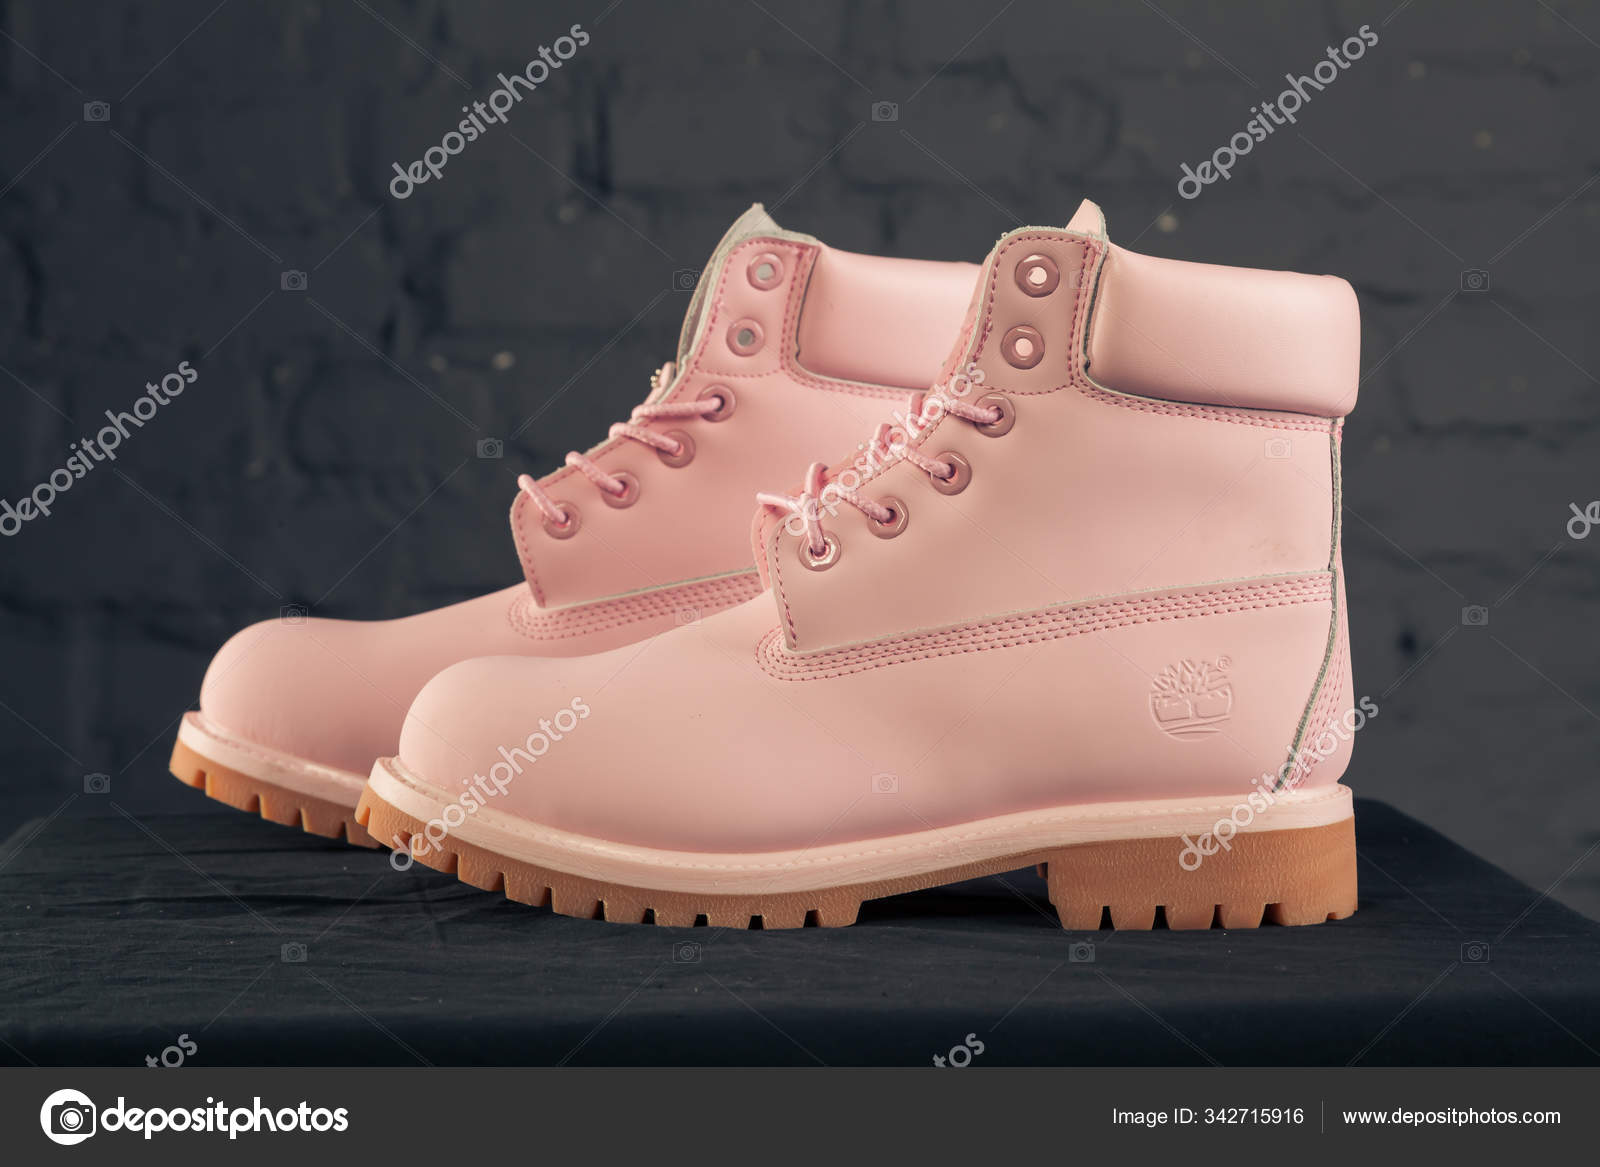 consenso Alexander Graham Bell Goneryl  New Beautiful Colorful Nice Timberland Tracking Shoes Sneakers Trainers  Shows – Stock Editorial Photo © sozon #342715916